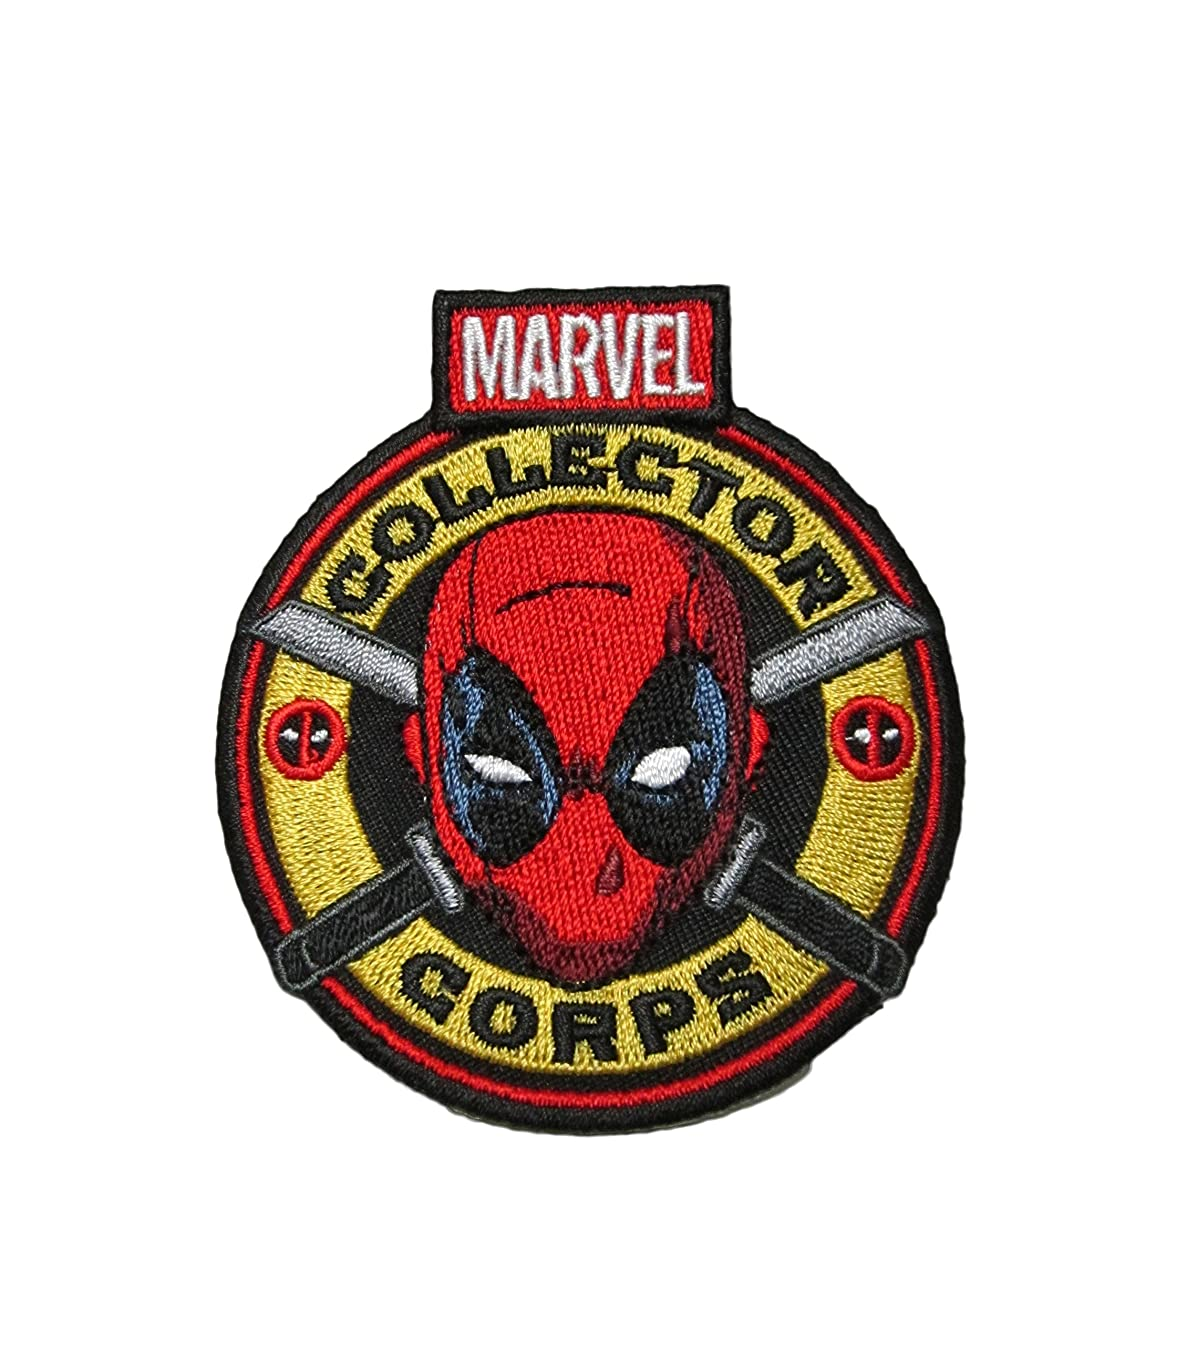 Marvel Collector Corps Deadpool Collectors Patch- Iron On Patch